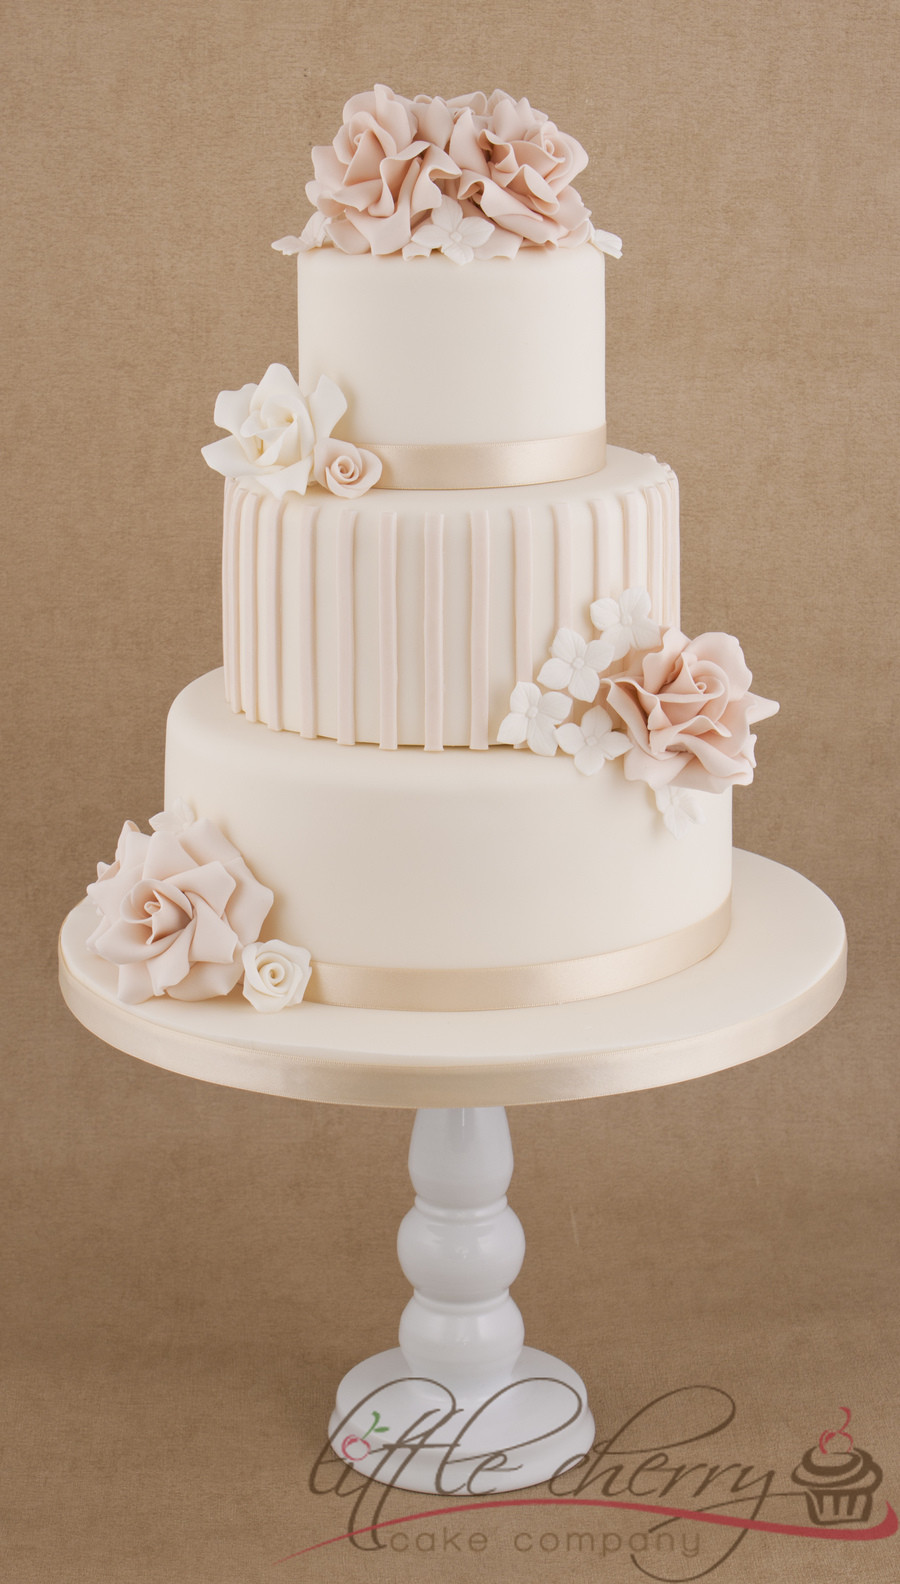 3 Tier Wedding Cakes Designs  Roses And Stripes 3 Tier Wedding Cake CakeCentral